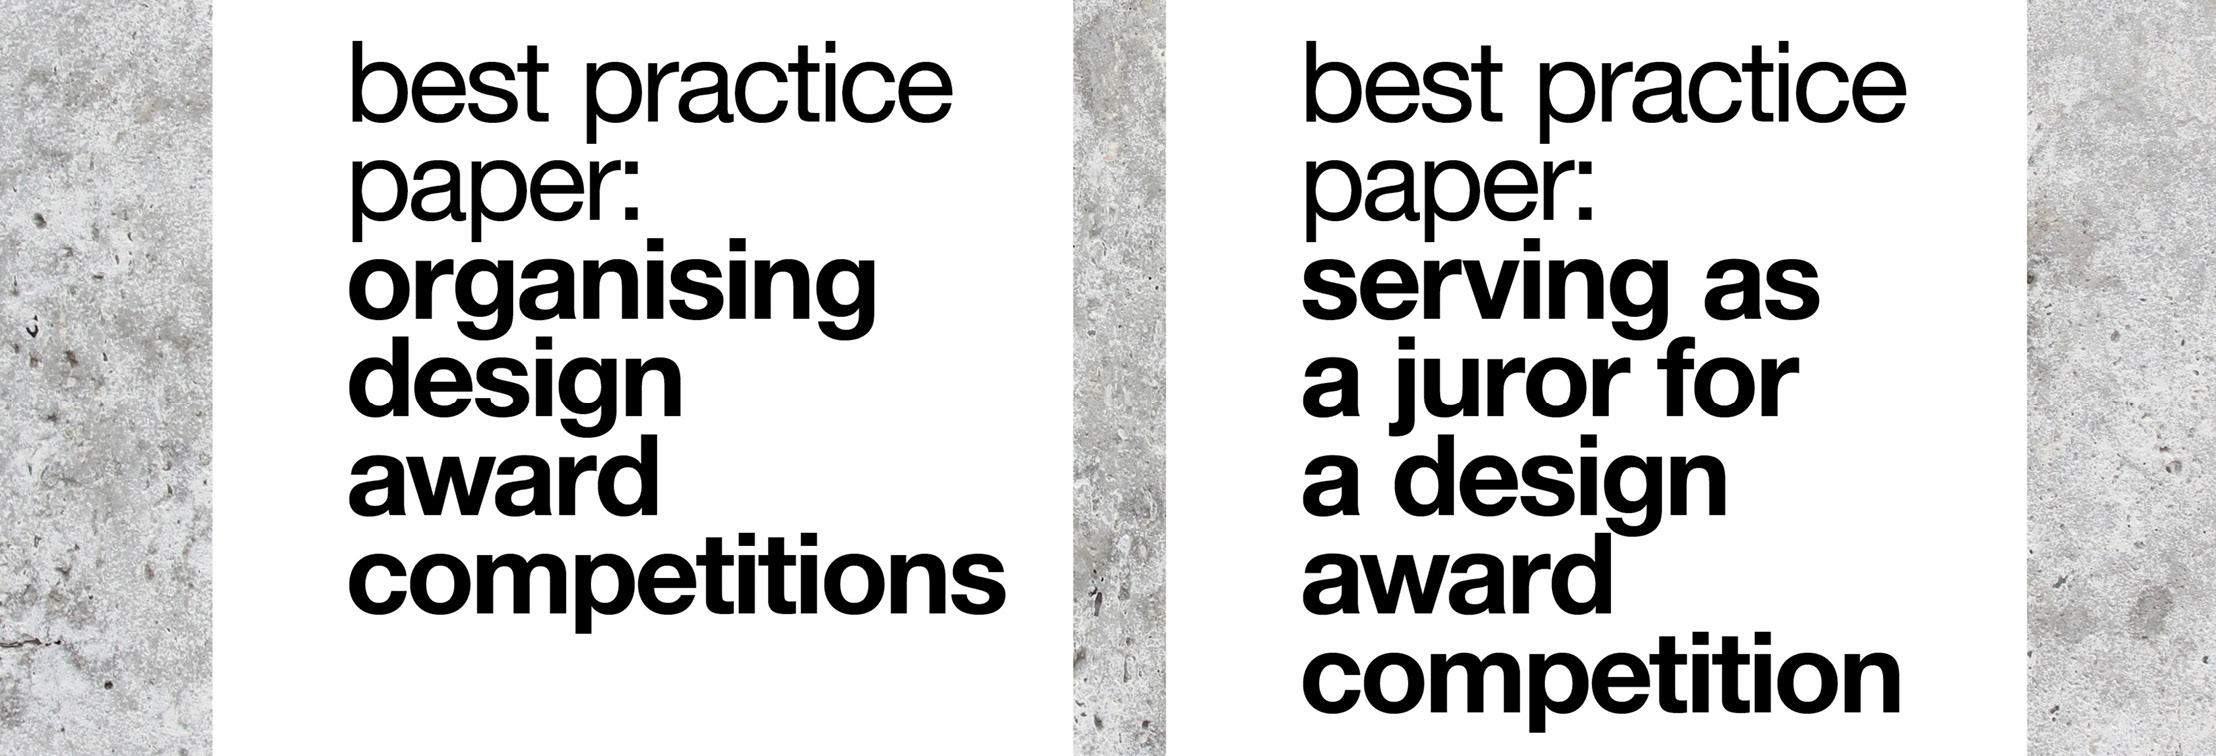 Two new Design Award Competitions Best Practice Papers Released